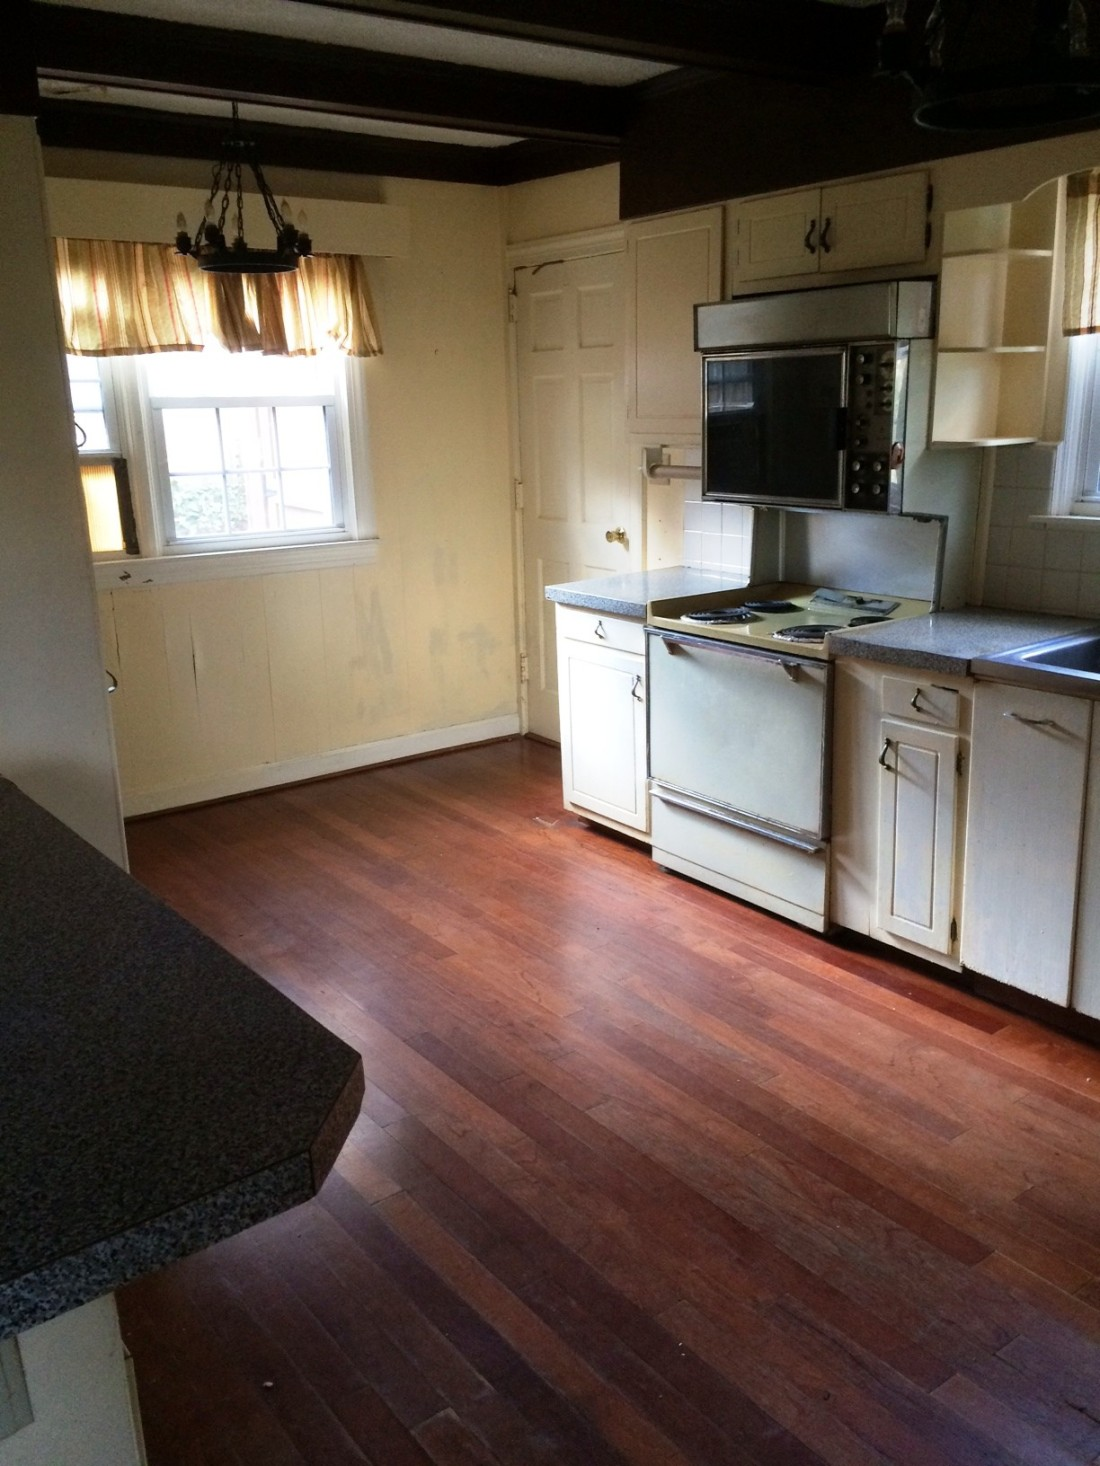 We estimate the original kitchen was last updated in the 1960s.